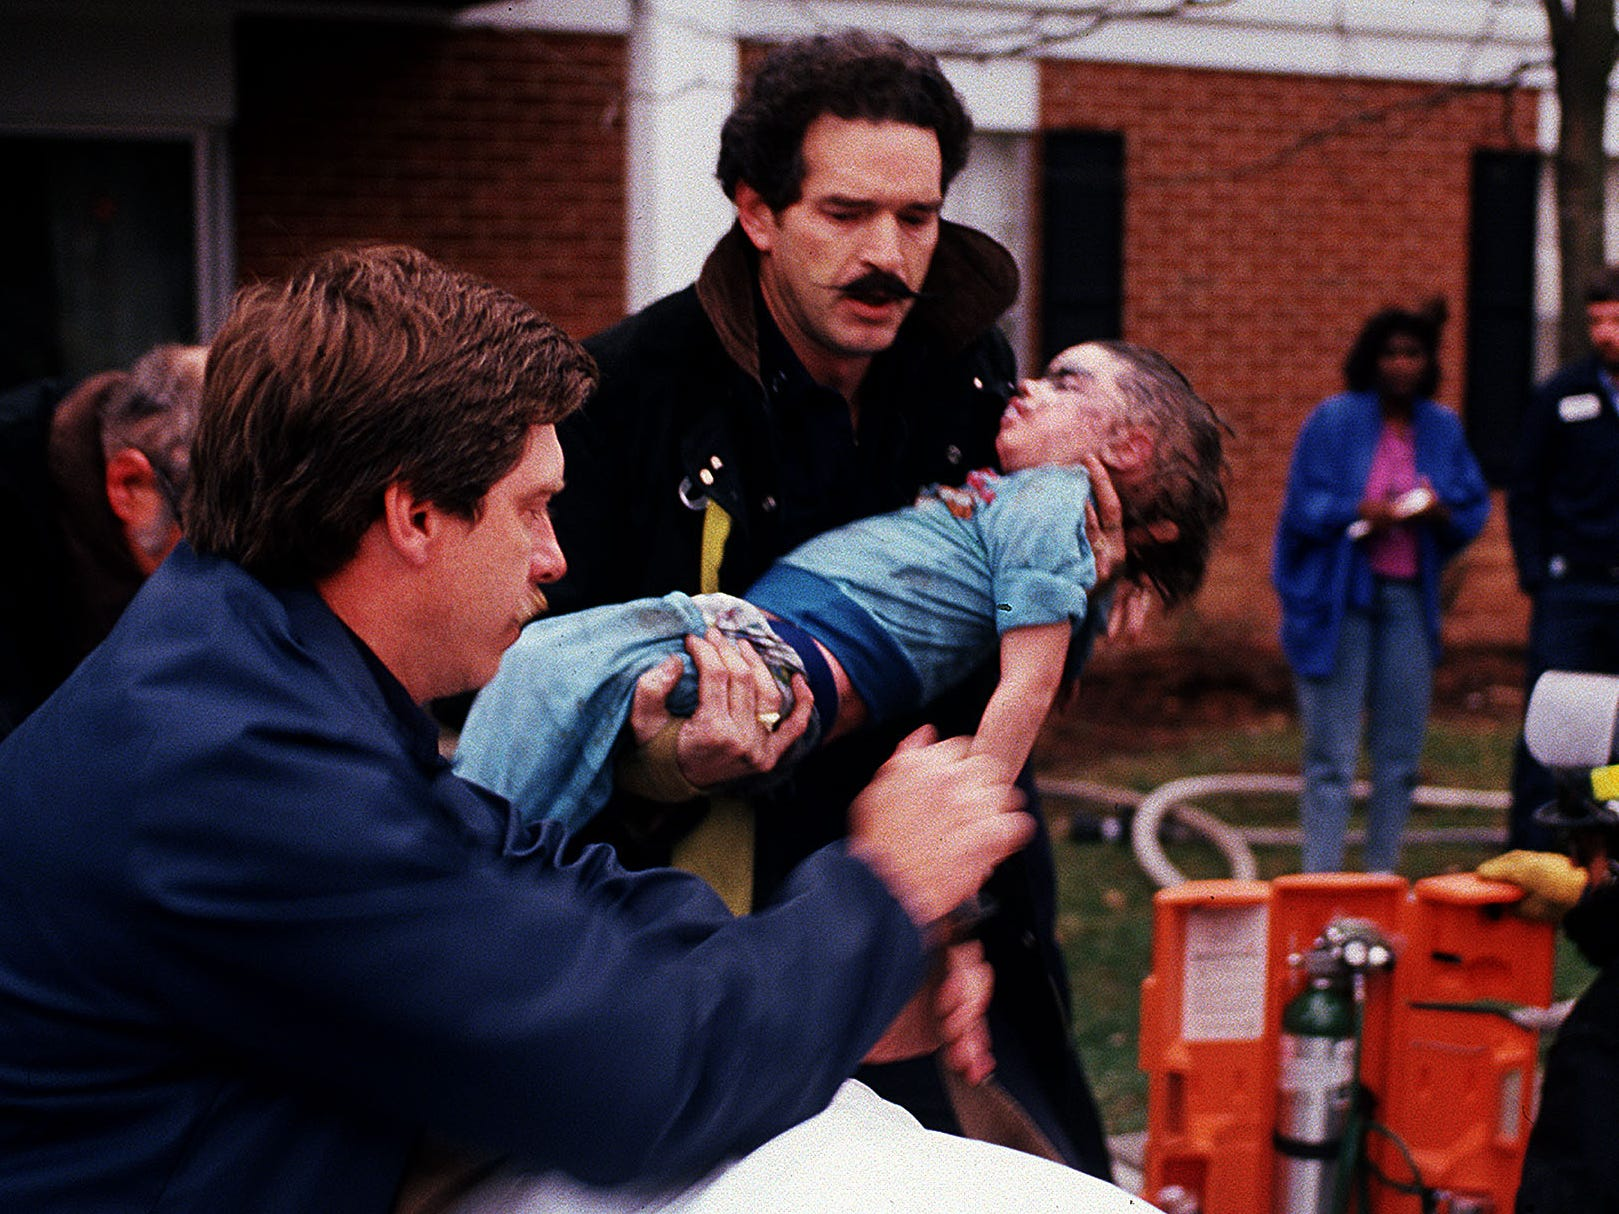 Knoxville firefighter Roy Wilson carries Philip Colby Galloway to a waiting stretcher held by emergency medical technician Don Lee. The child was rescued from a burning apartment in New College Homes Dec 19, 1988.